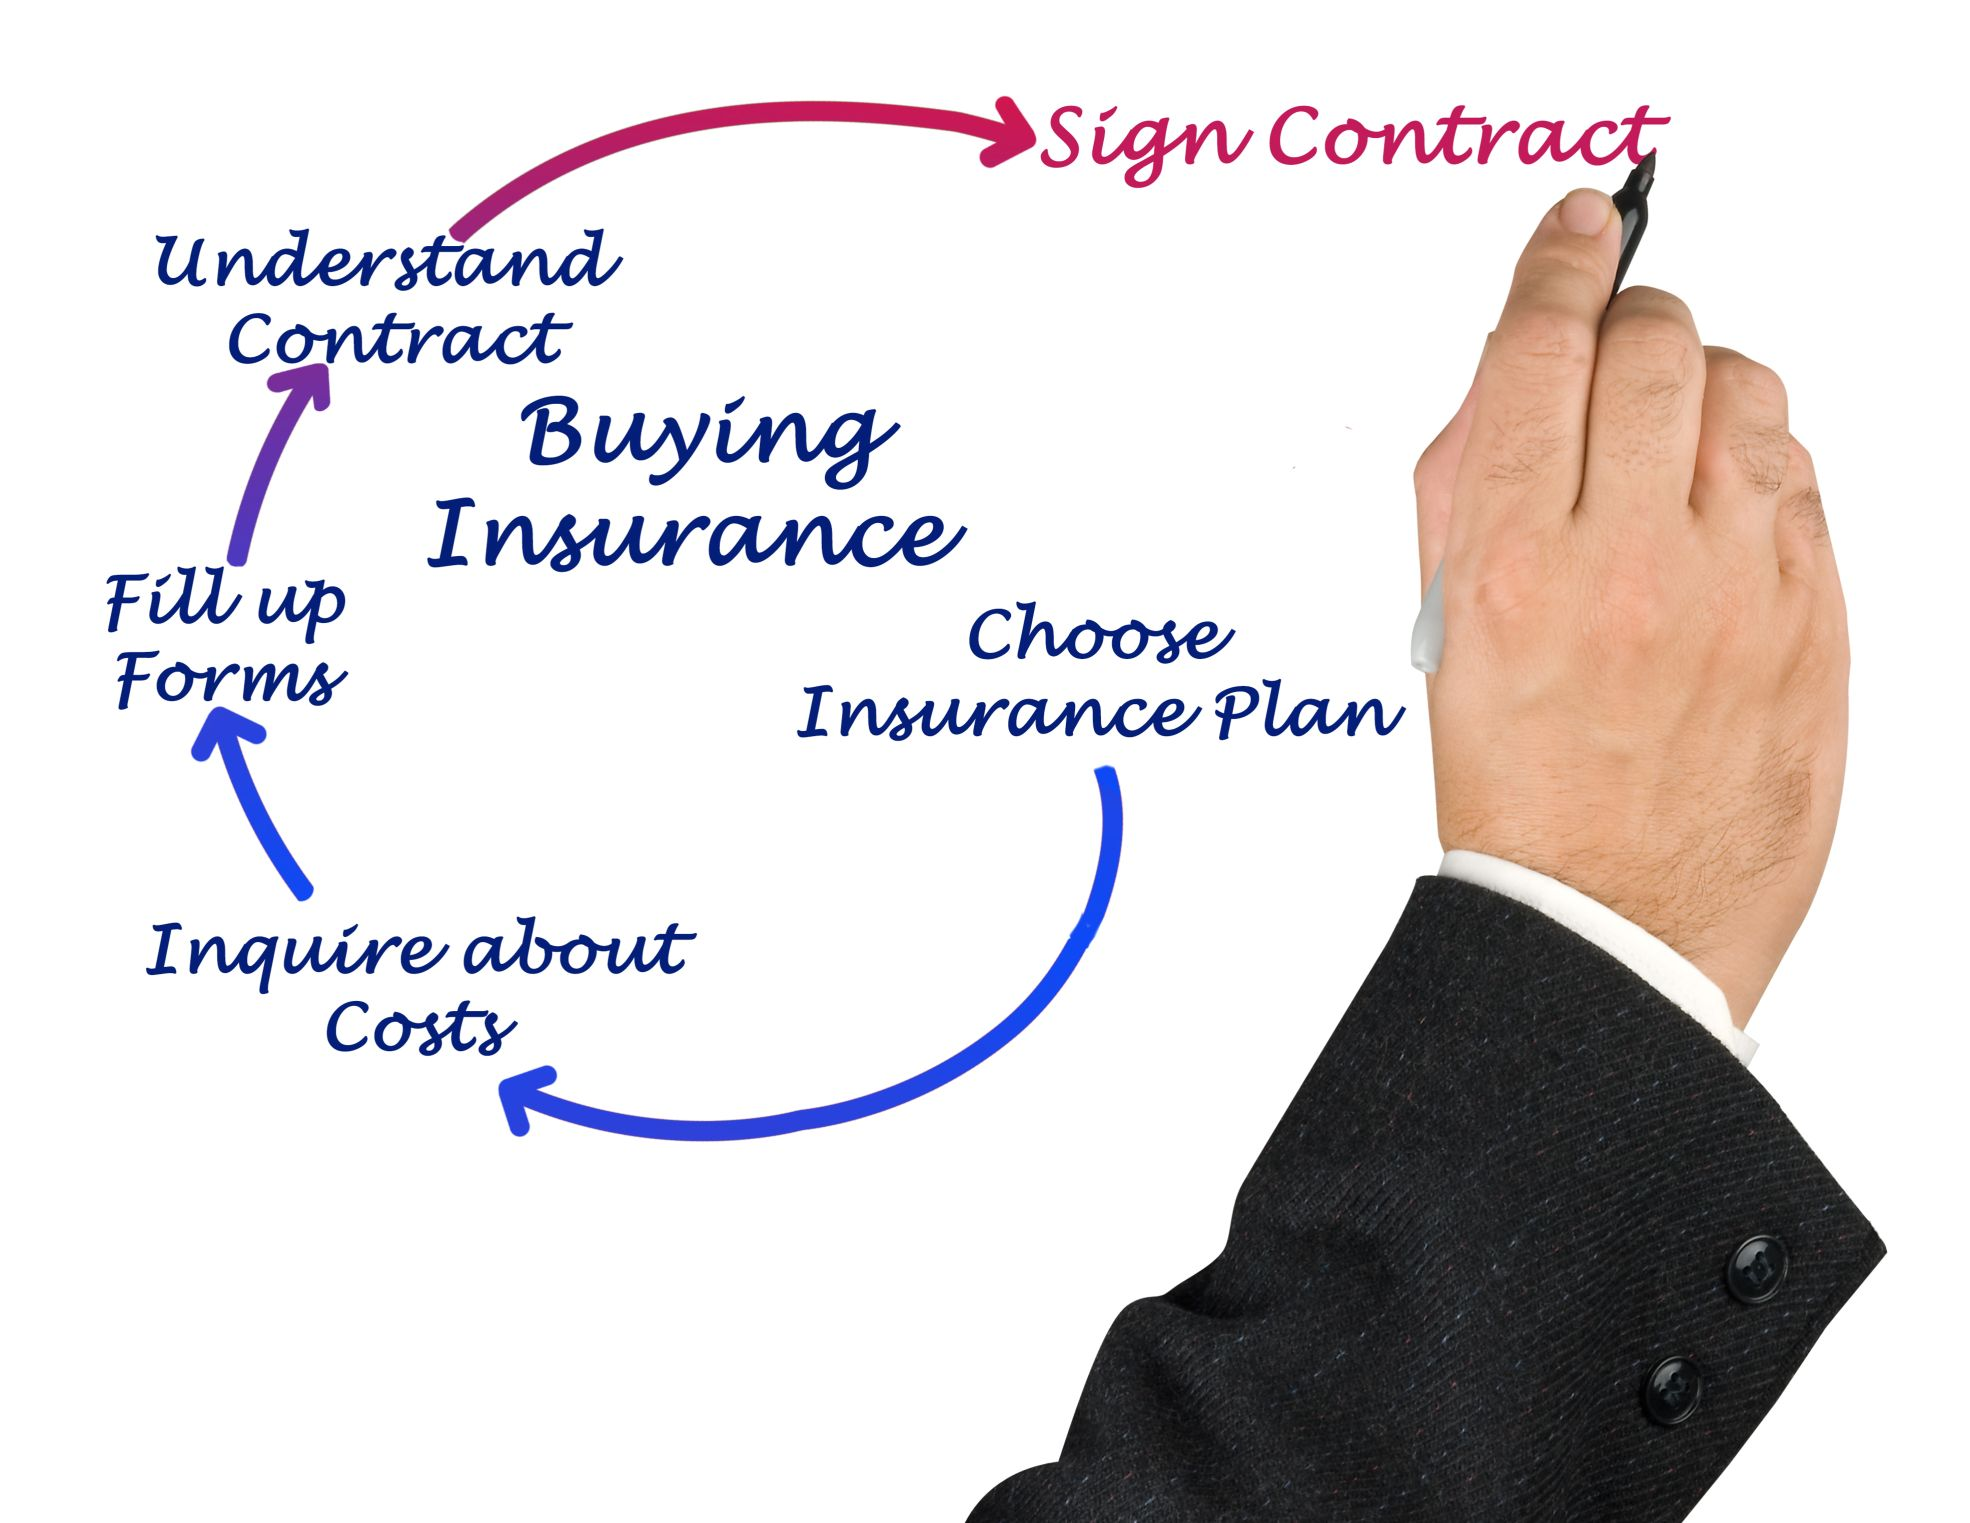 Life Insurance Buying Process